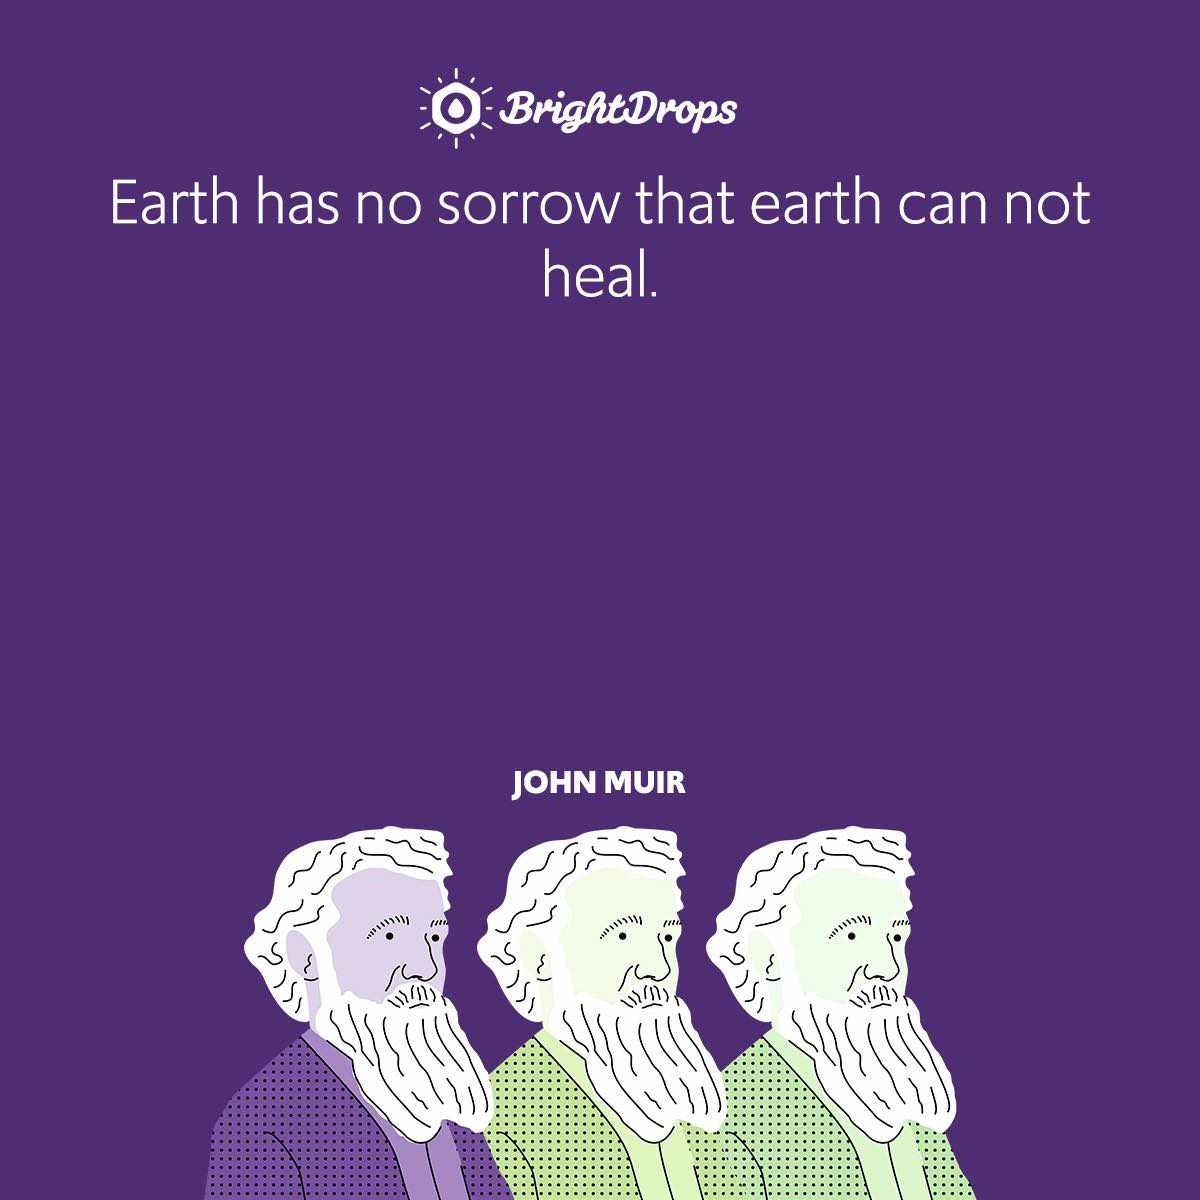 Earth has no sorrow that earth can not heal.